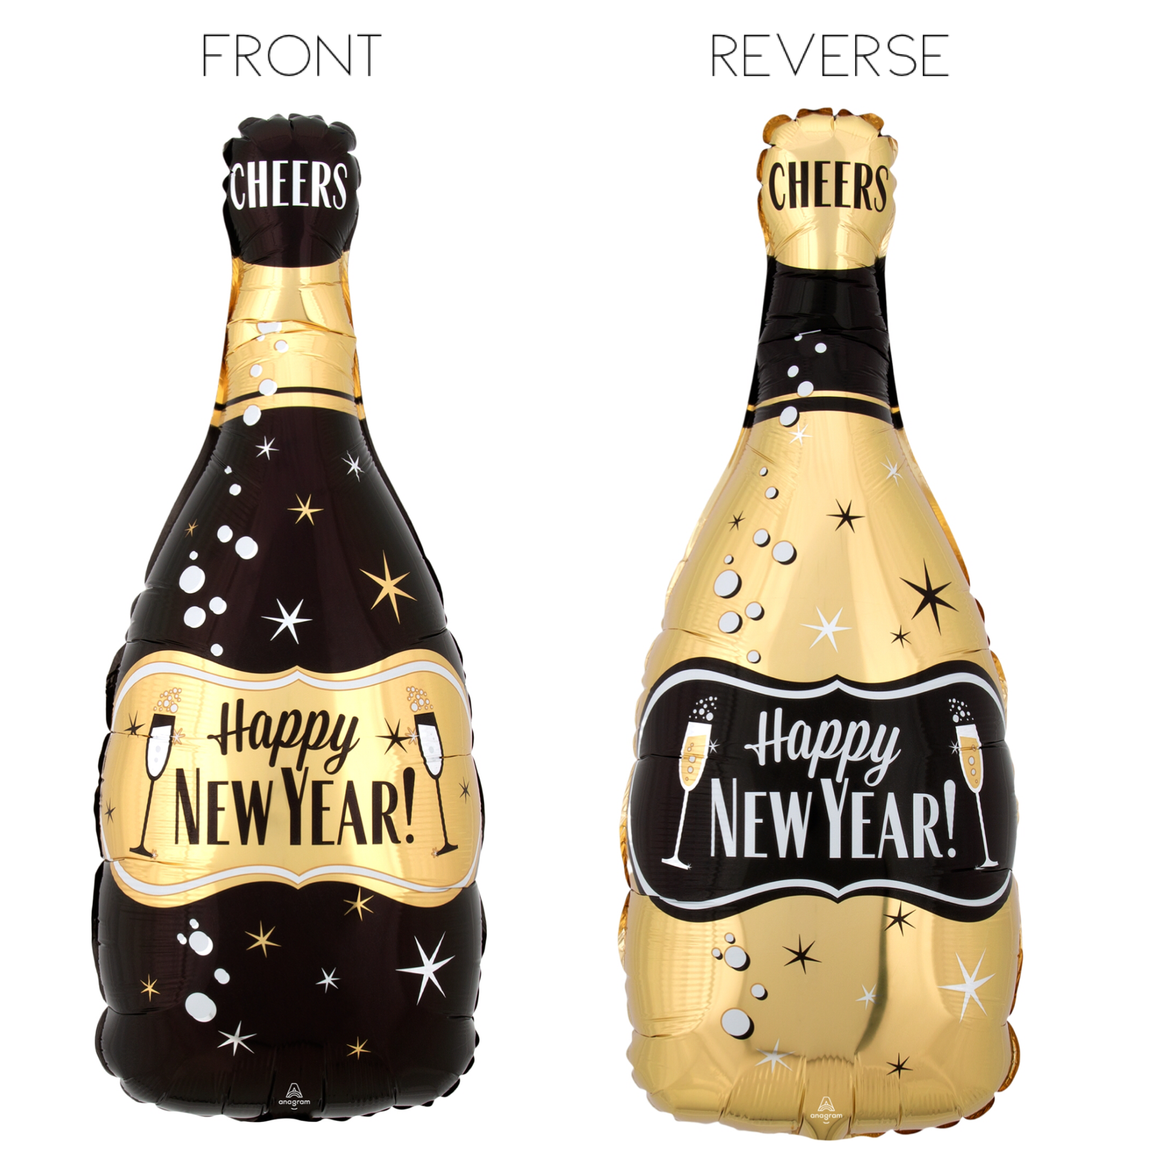 BALLOONS - BEVERAGE BOTTLE CHAMPAGNE HAPPY NEW YEAR